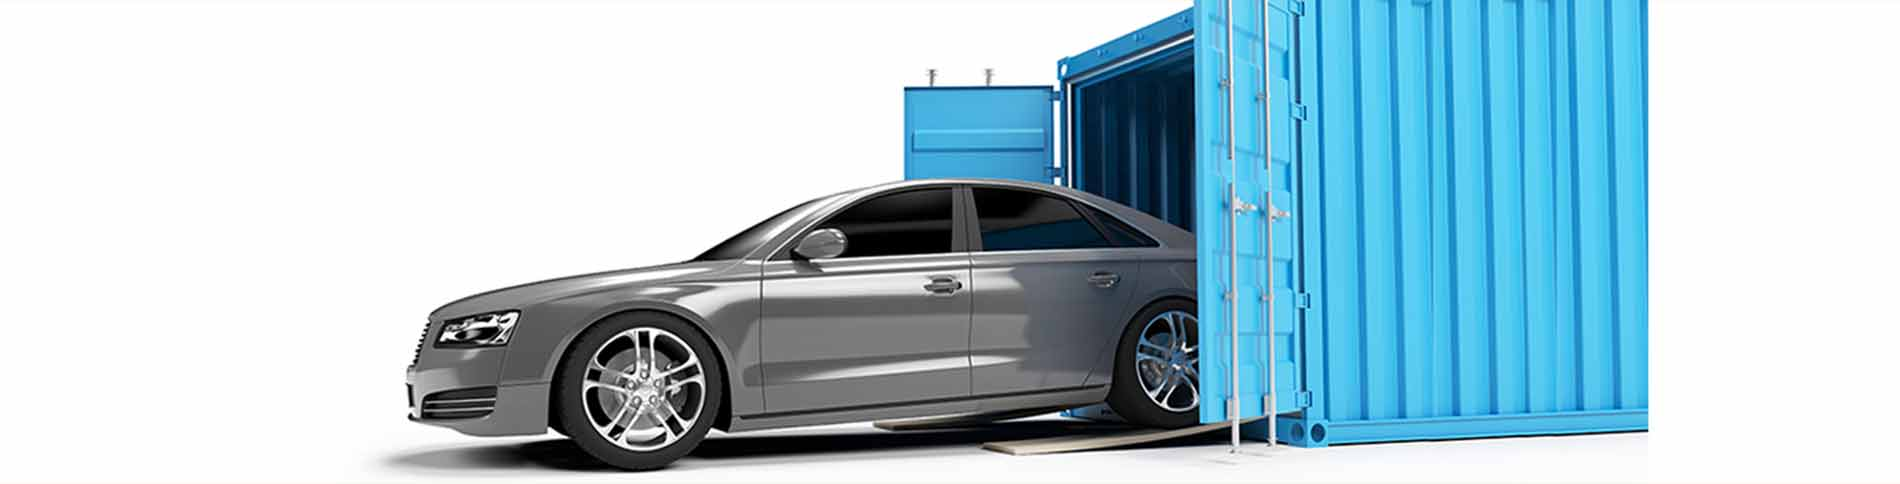 Car Storage Containers for Shipping & Parking | Conexwest